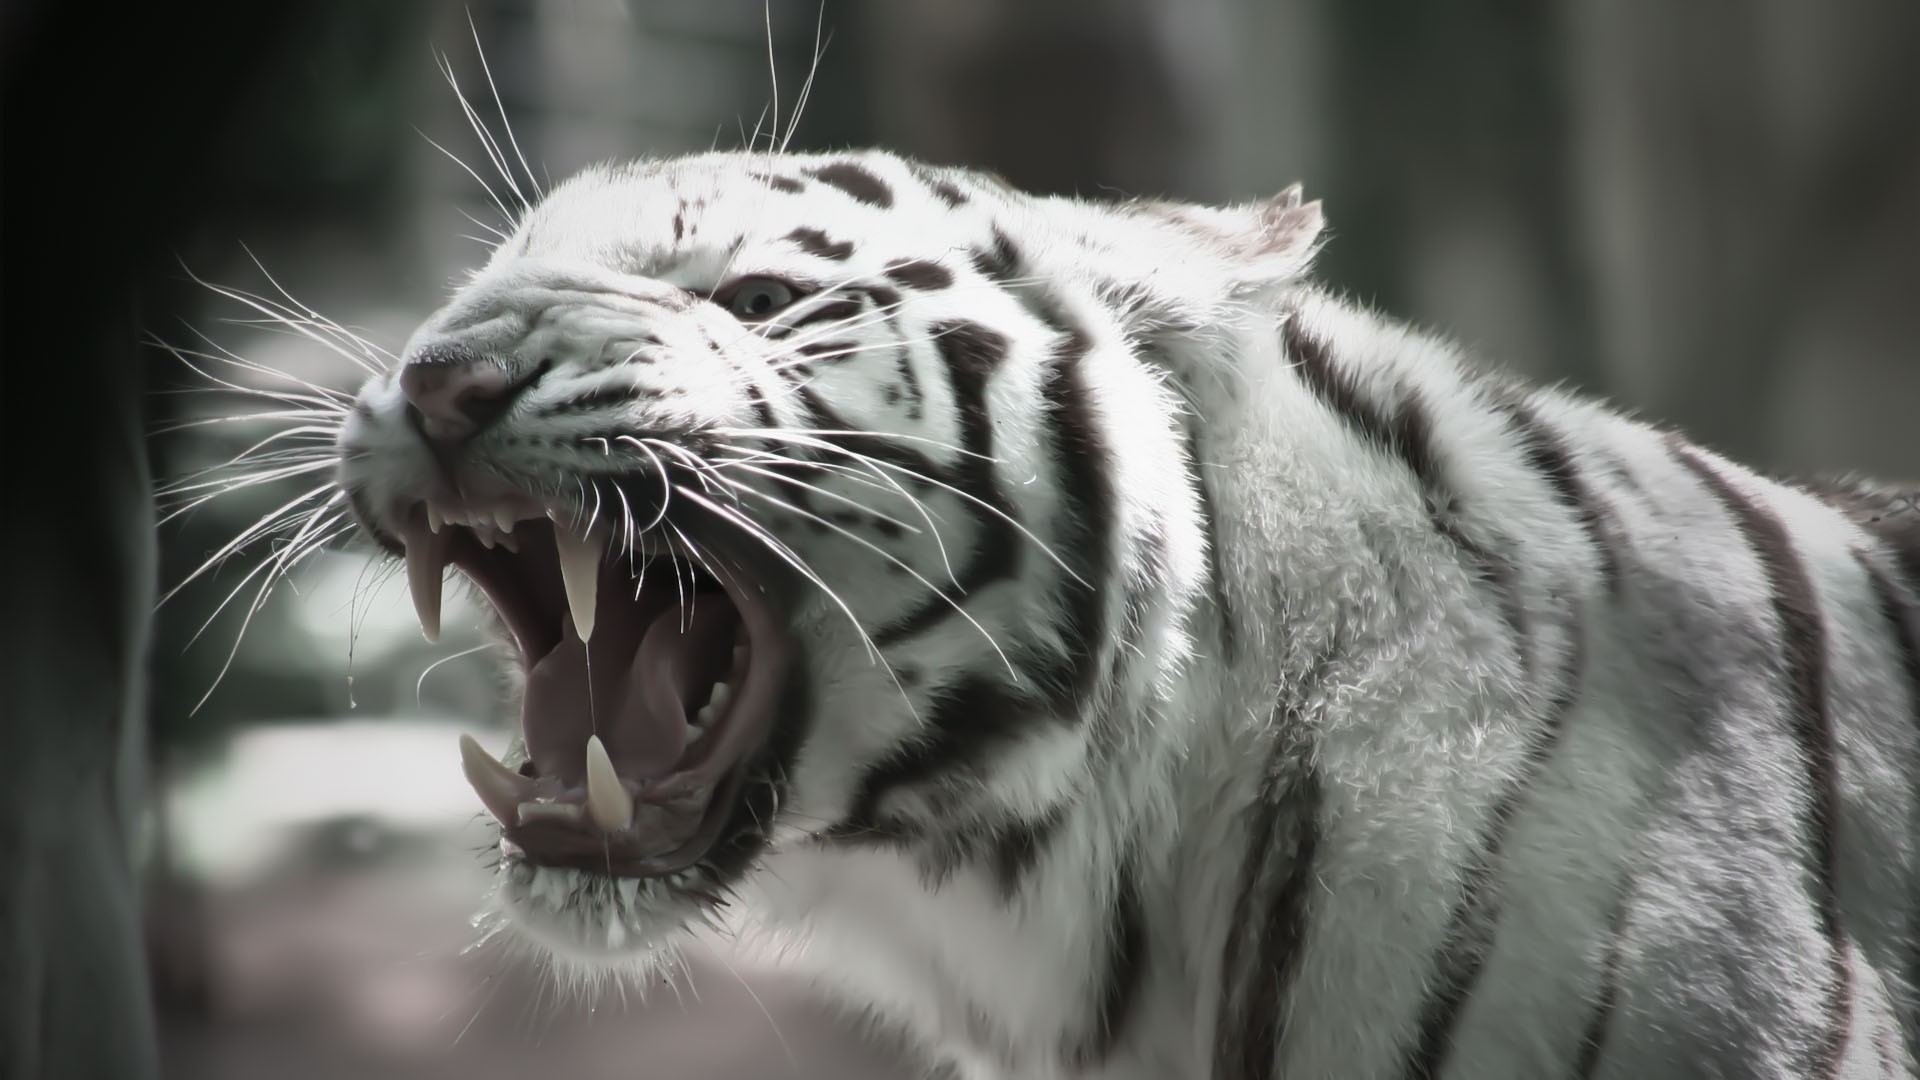 image - roaring-white-tiger-animal-hd-wallpaper-1920x1080-6590